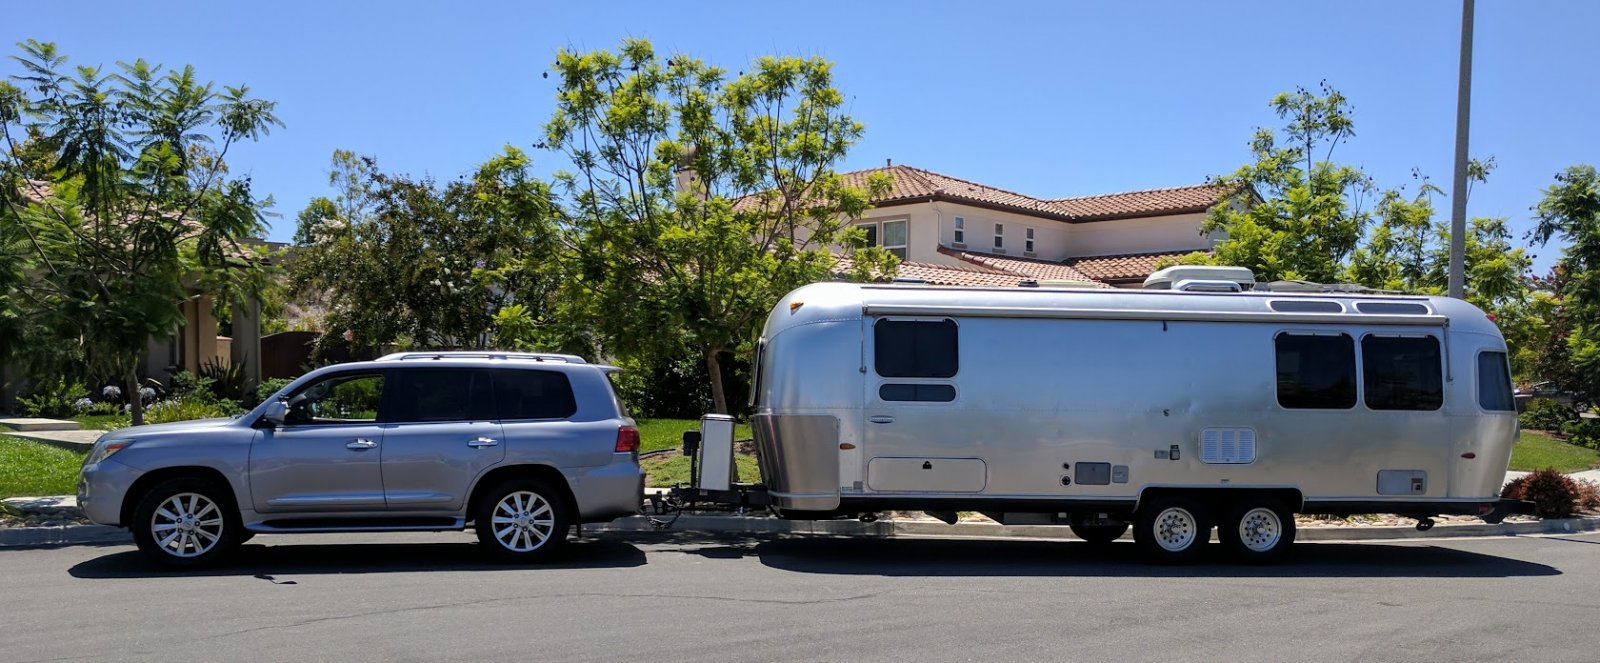 Click image for larger version  Name:airstream1.jpg Views:343 Size:238.1 KB ID:294172